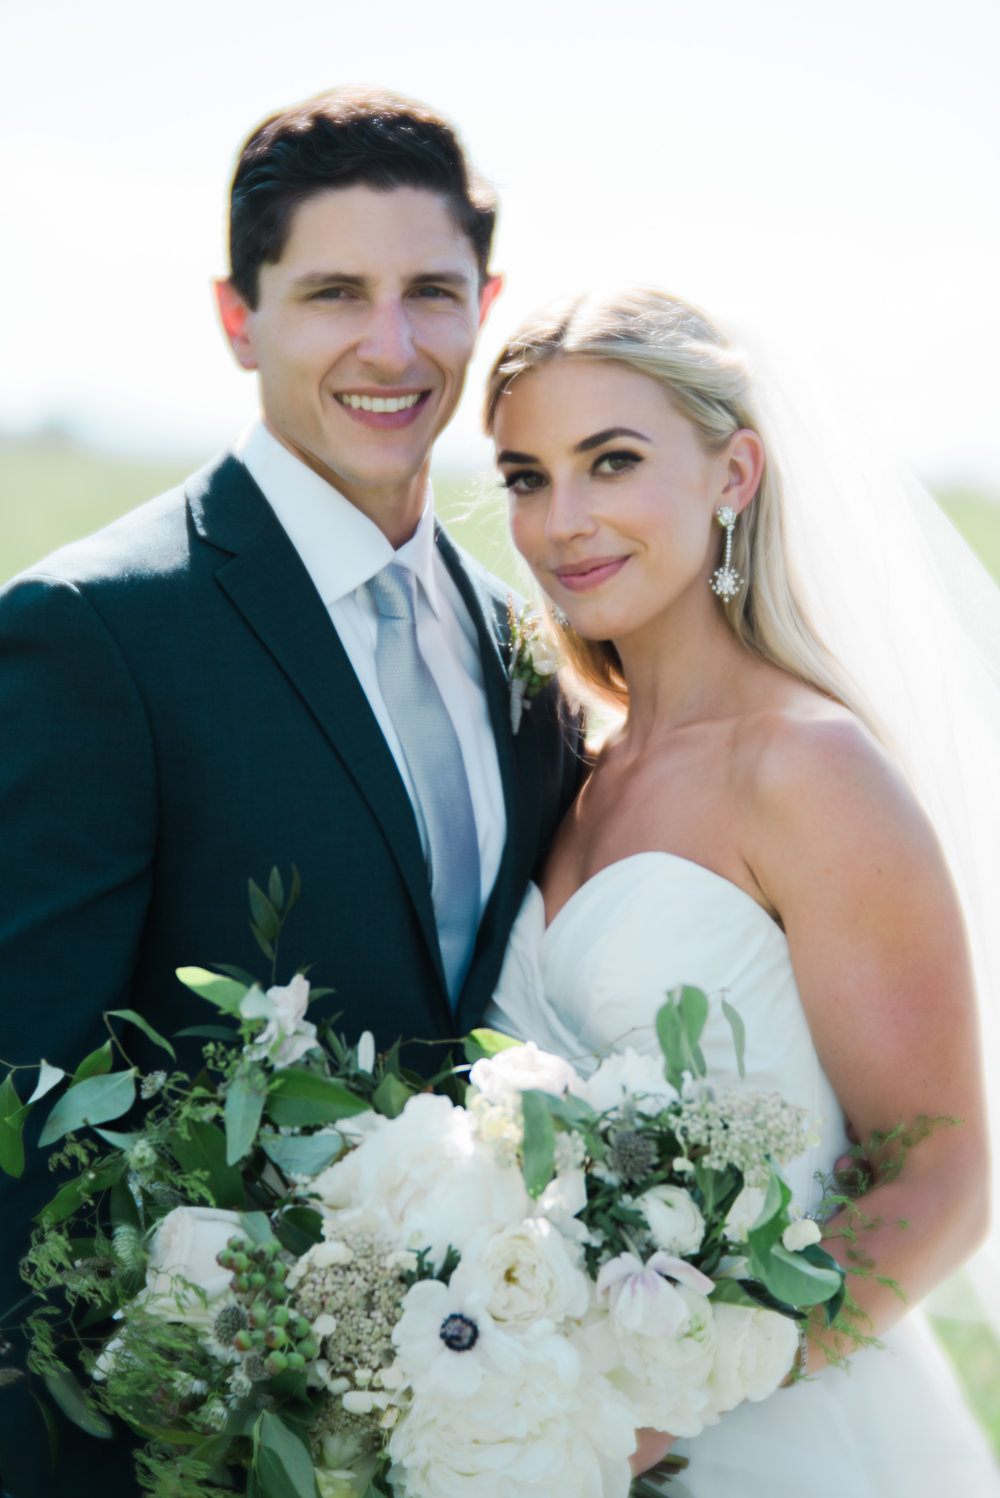 """Summer really has an eye for flowers and I fully trusted her vision through out the process. She was so great at understanding what I wanted and I was very happy with her services. I would highly recommend her to other brides!!""-  Stefanie 8/1/17  photography:  Benjamin Edwards Photography   planning, invitations, rentals:  AE Creative   venue:   Triple D Ranch   hair & makeup-  Makeup Mafia   tent & stage rental-  West Coast Event Productions   rentals-  O'Brien Events  &  Set in Your Way   drinks-  The Swig Rig  and  Bend Beerstream   catering-  Back to the Tables   cake-  Dreamin' Desserts   calligraphy-  My Fair Letters   videography-  Matt Green Films"